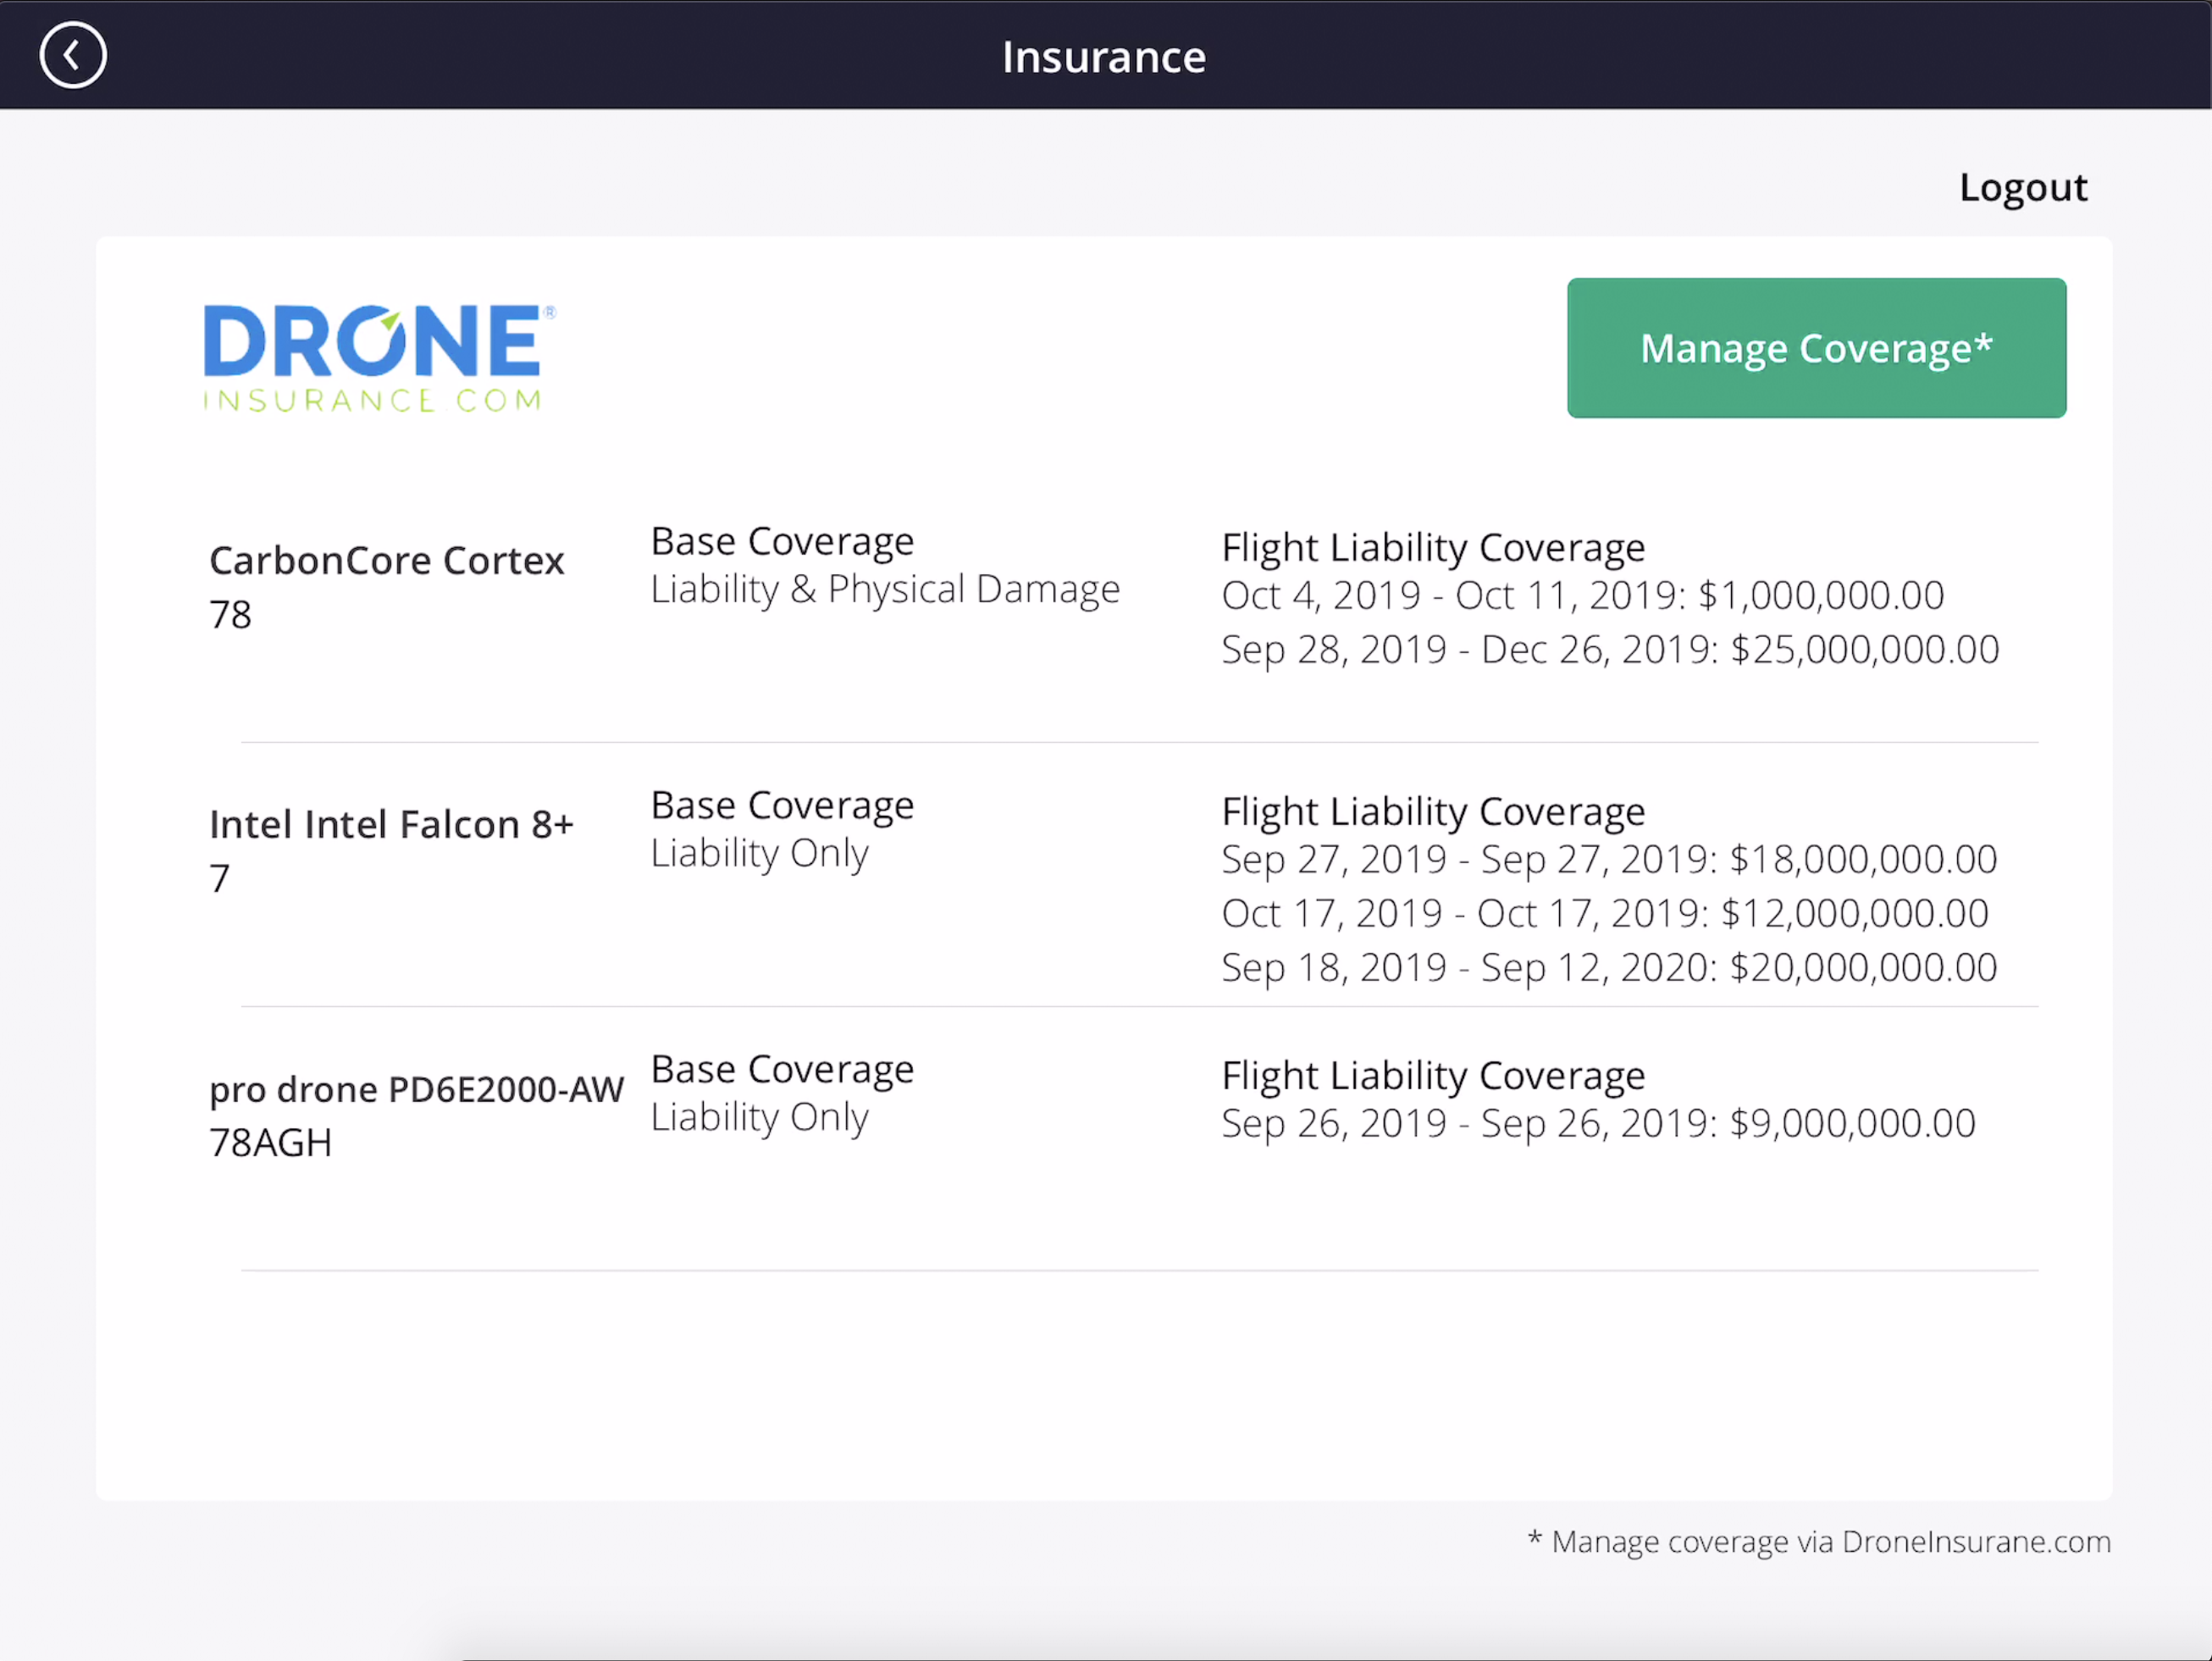 Measure Integration - Insurance Listing - implemented